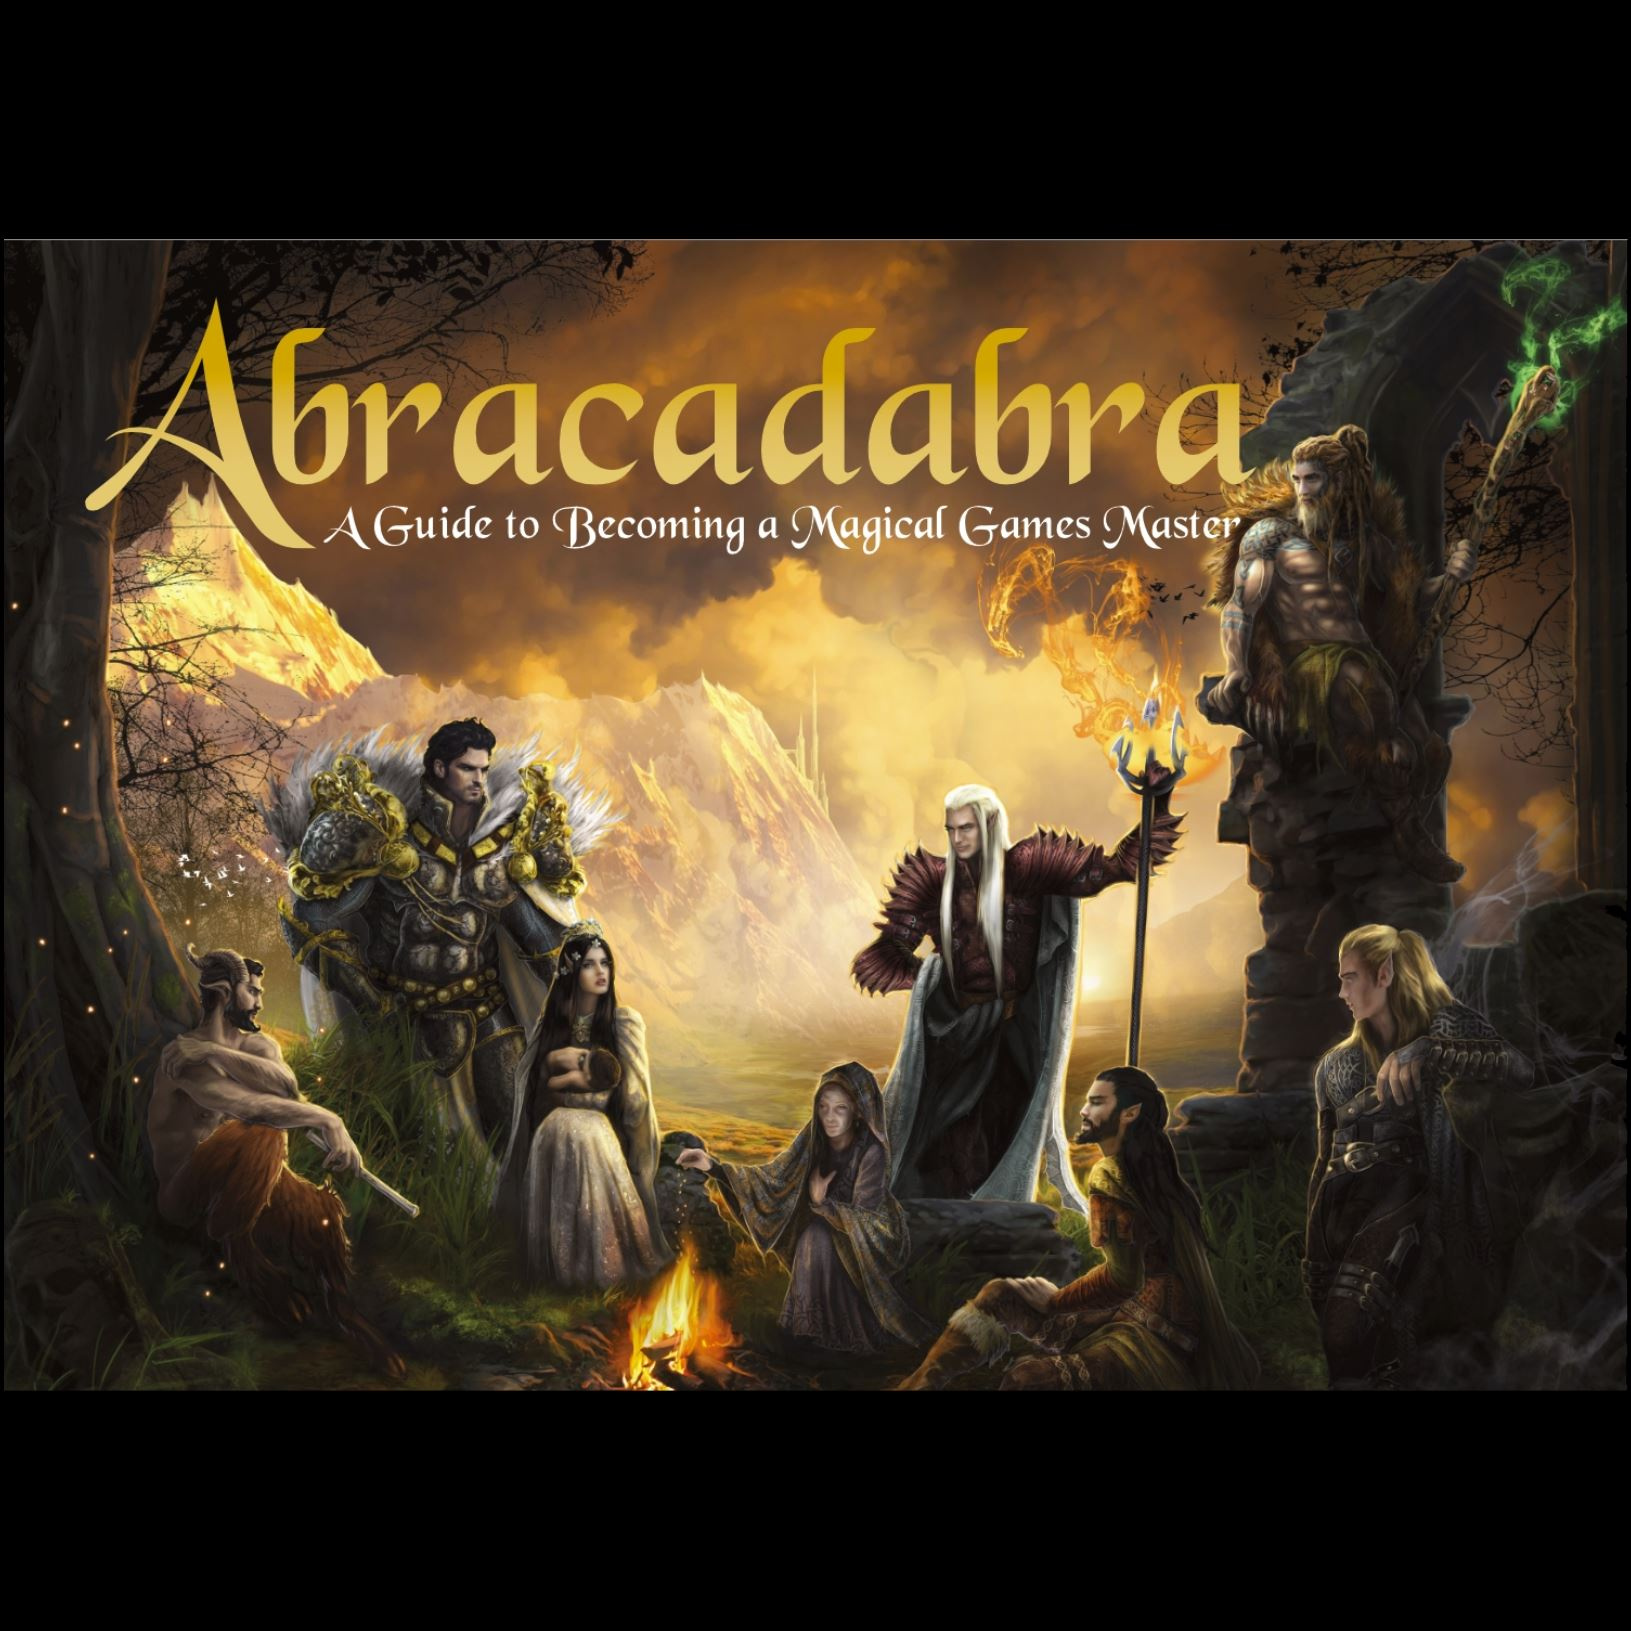 Abracadabra. A Guide to Becoming a Magical Games Master